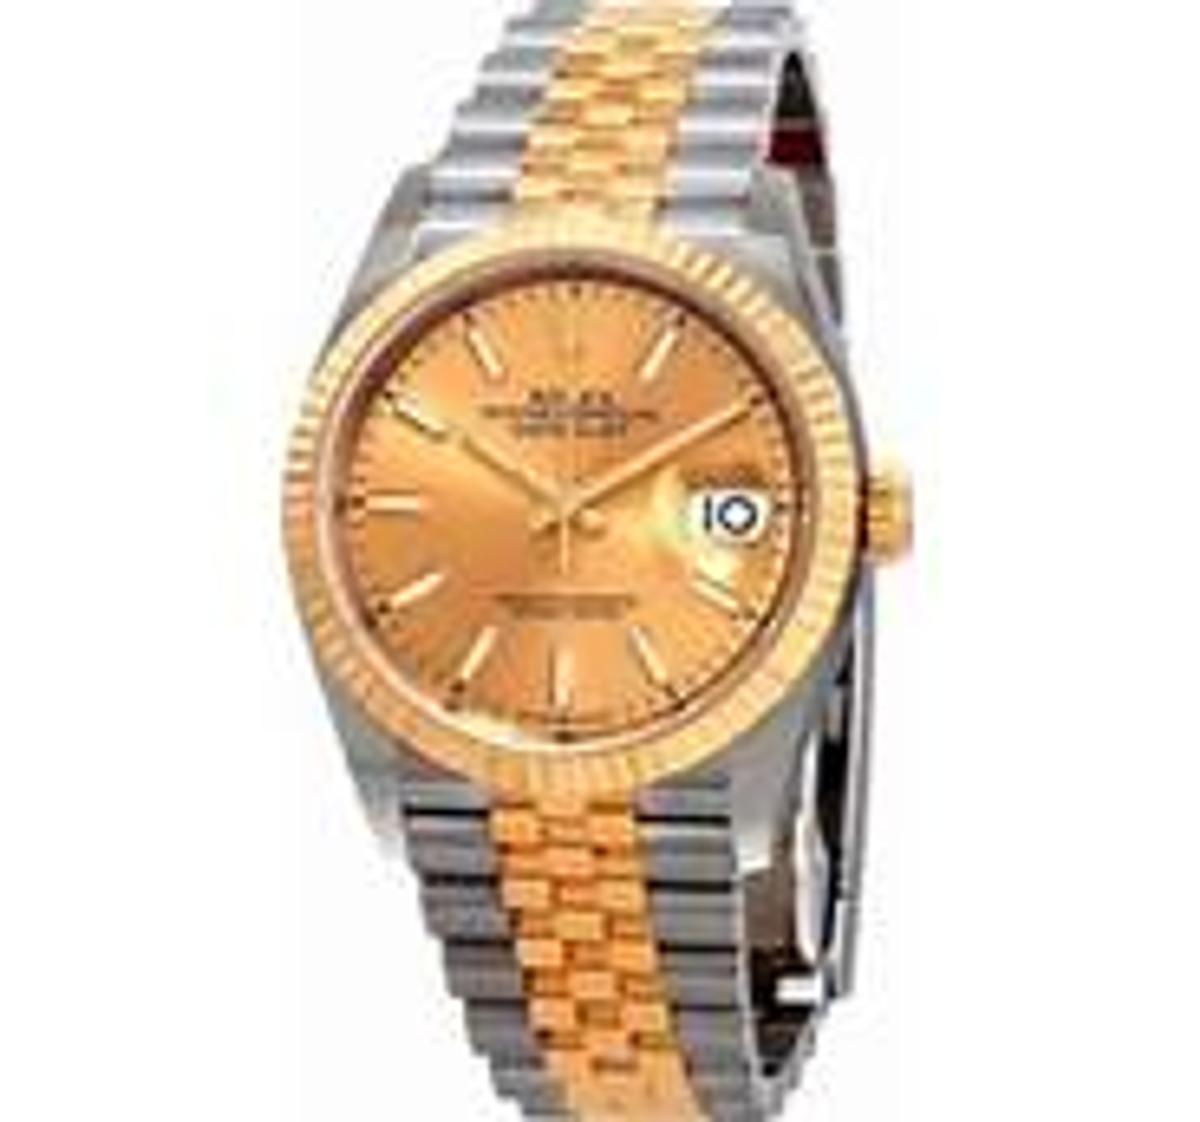 ROLEX WANTED 36MM UPWARDS ALL MODELS CONSIDERED PREFEREBLY WITH BOX AND PAPERWORK CASH OR BANK TRANSFER PLEASE CONTACT ME ON 07424845745 THANKS DAN